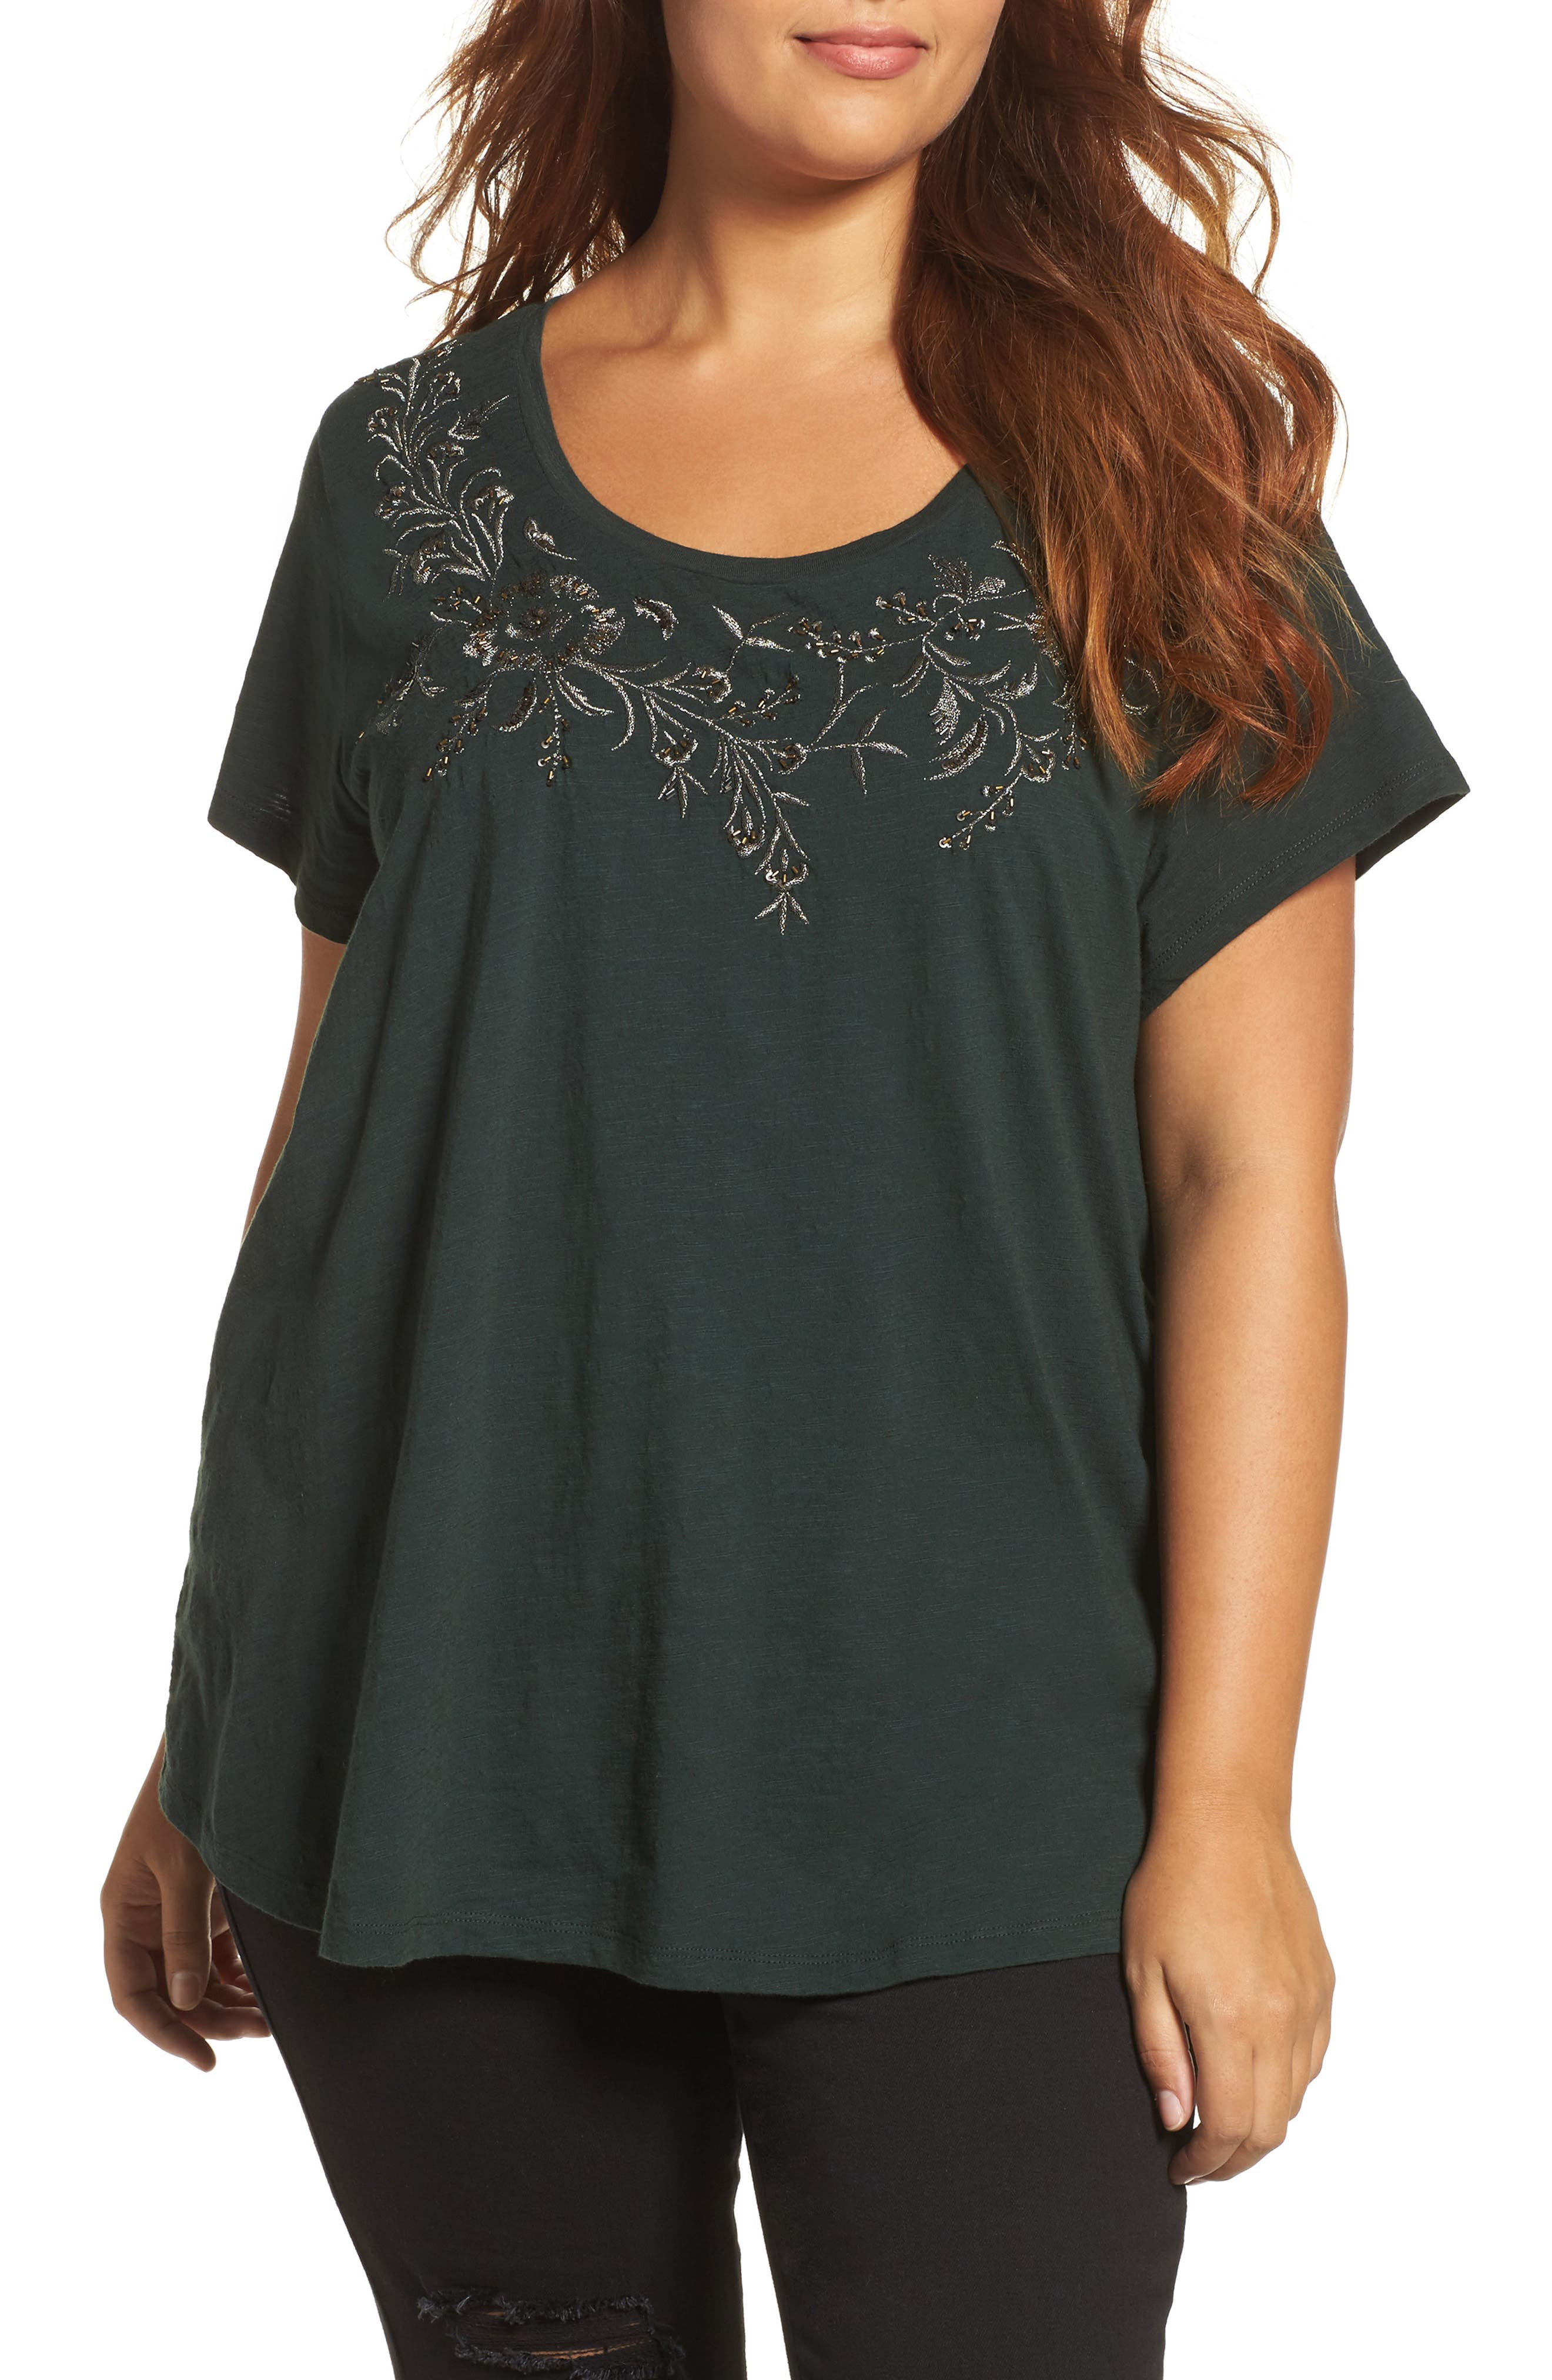 Main Image - Lucky Brand Floral Embellished Tee (Plus Size)